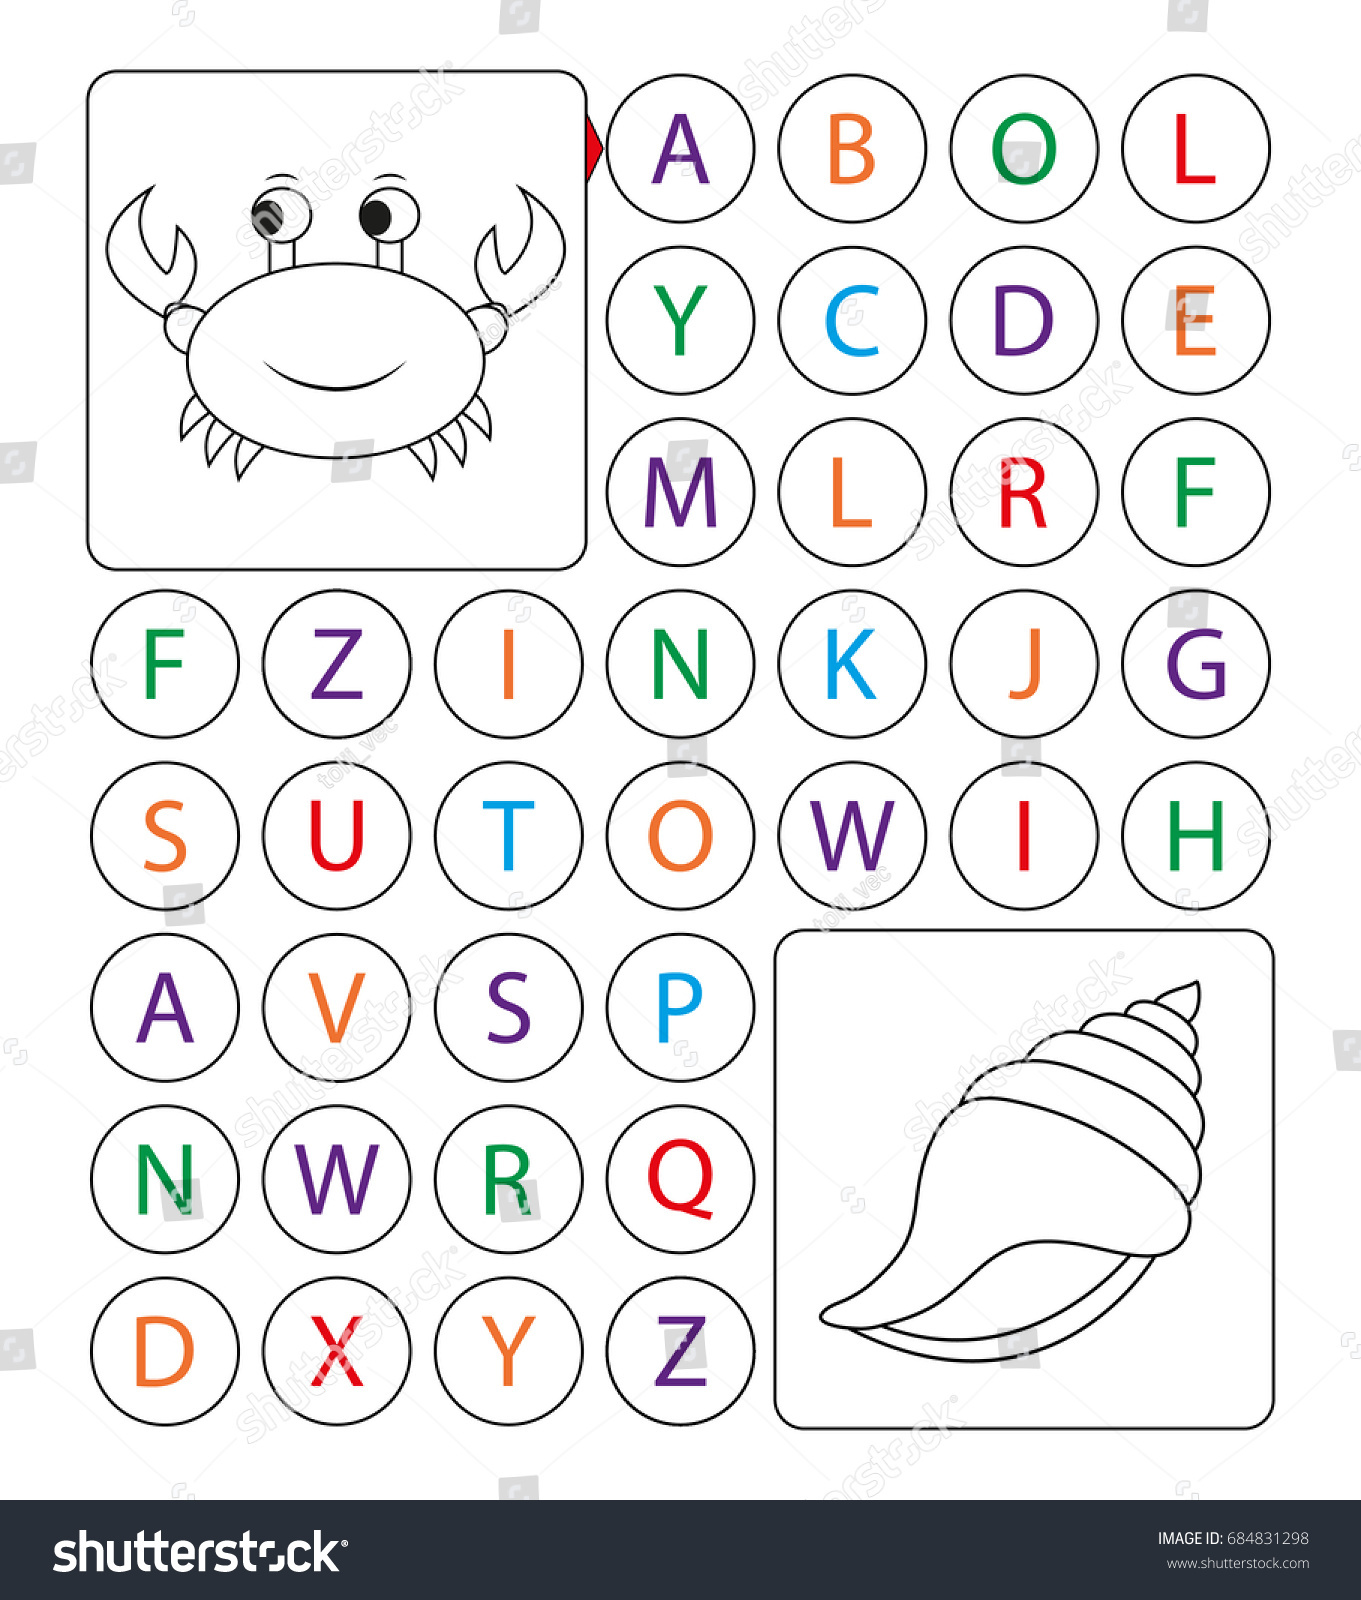 Alphabetic Labyrinth Puzzle Worksheet Learning Letters